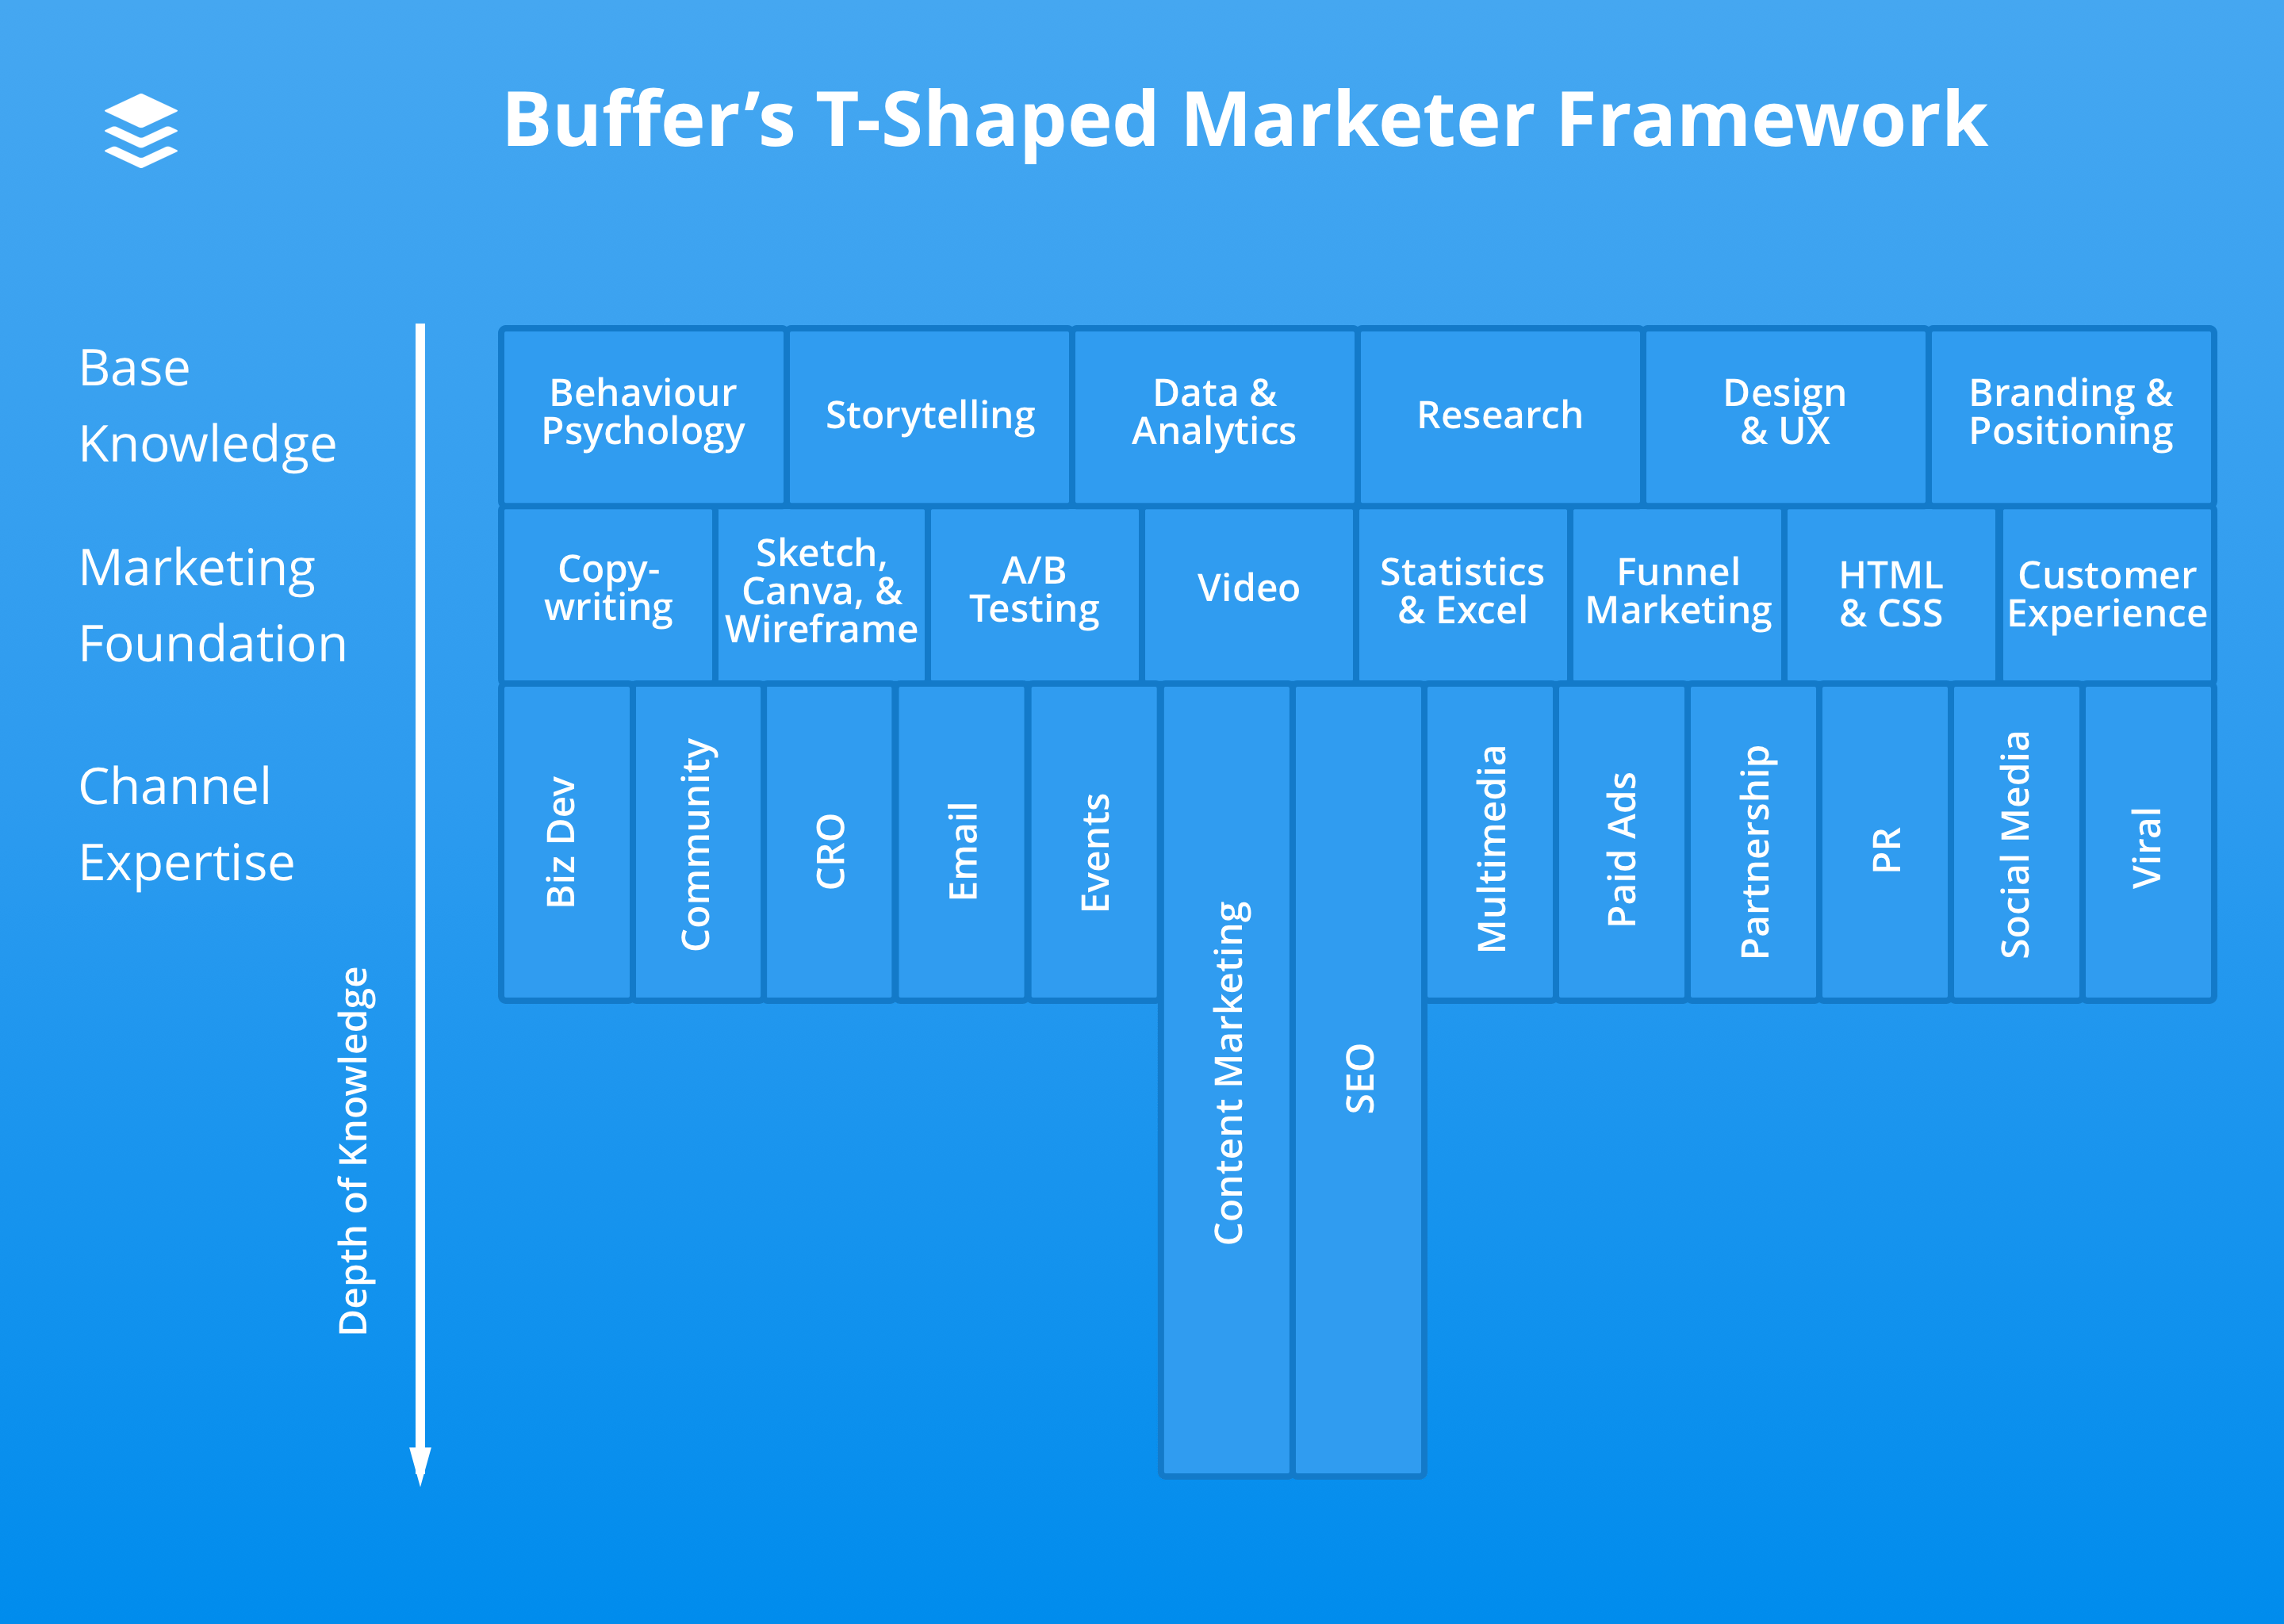 Buffer T-Shaped Marketer Framework